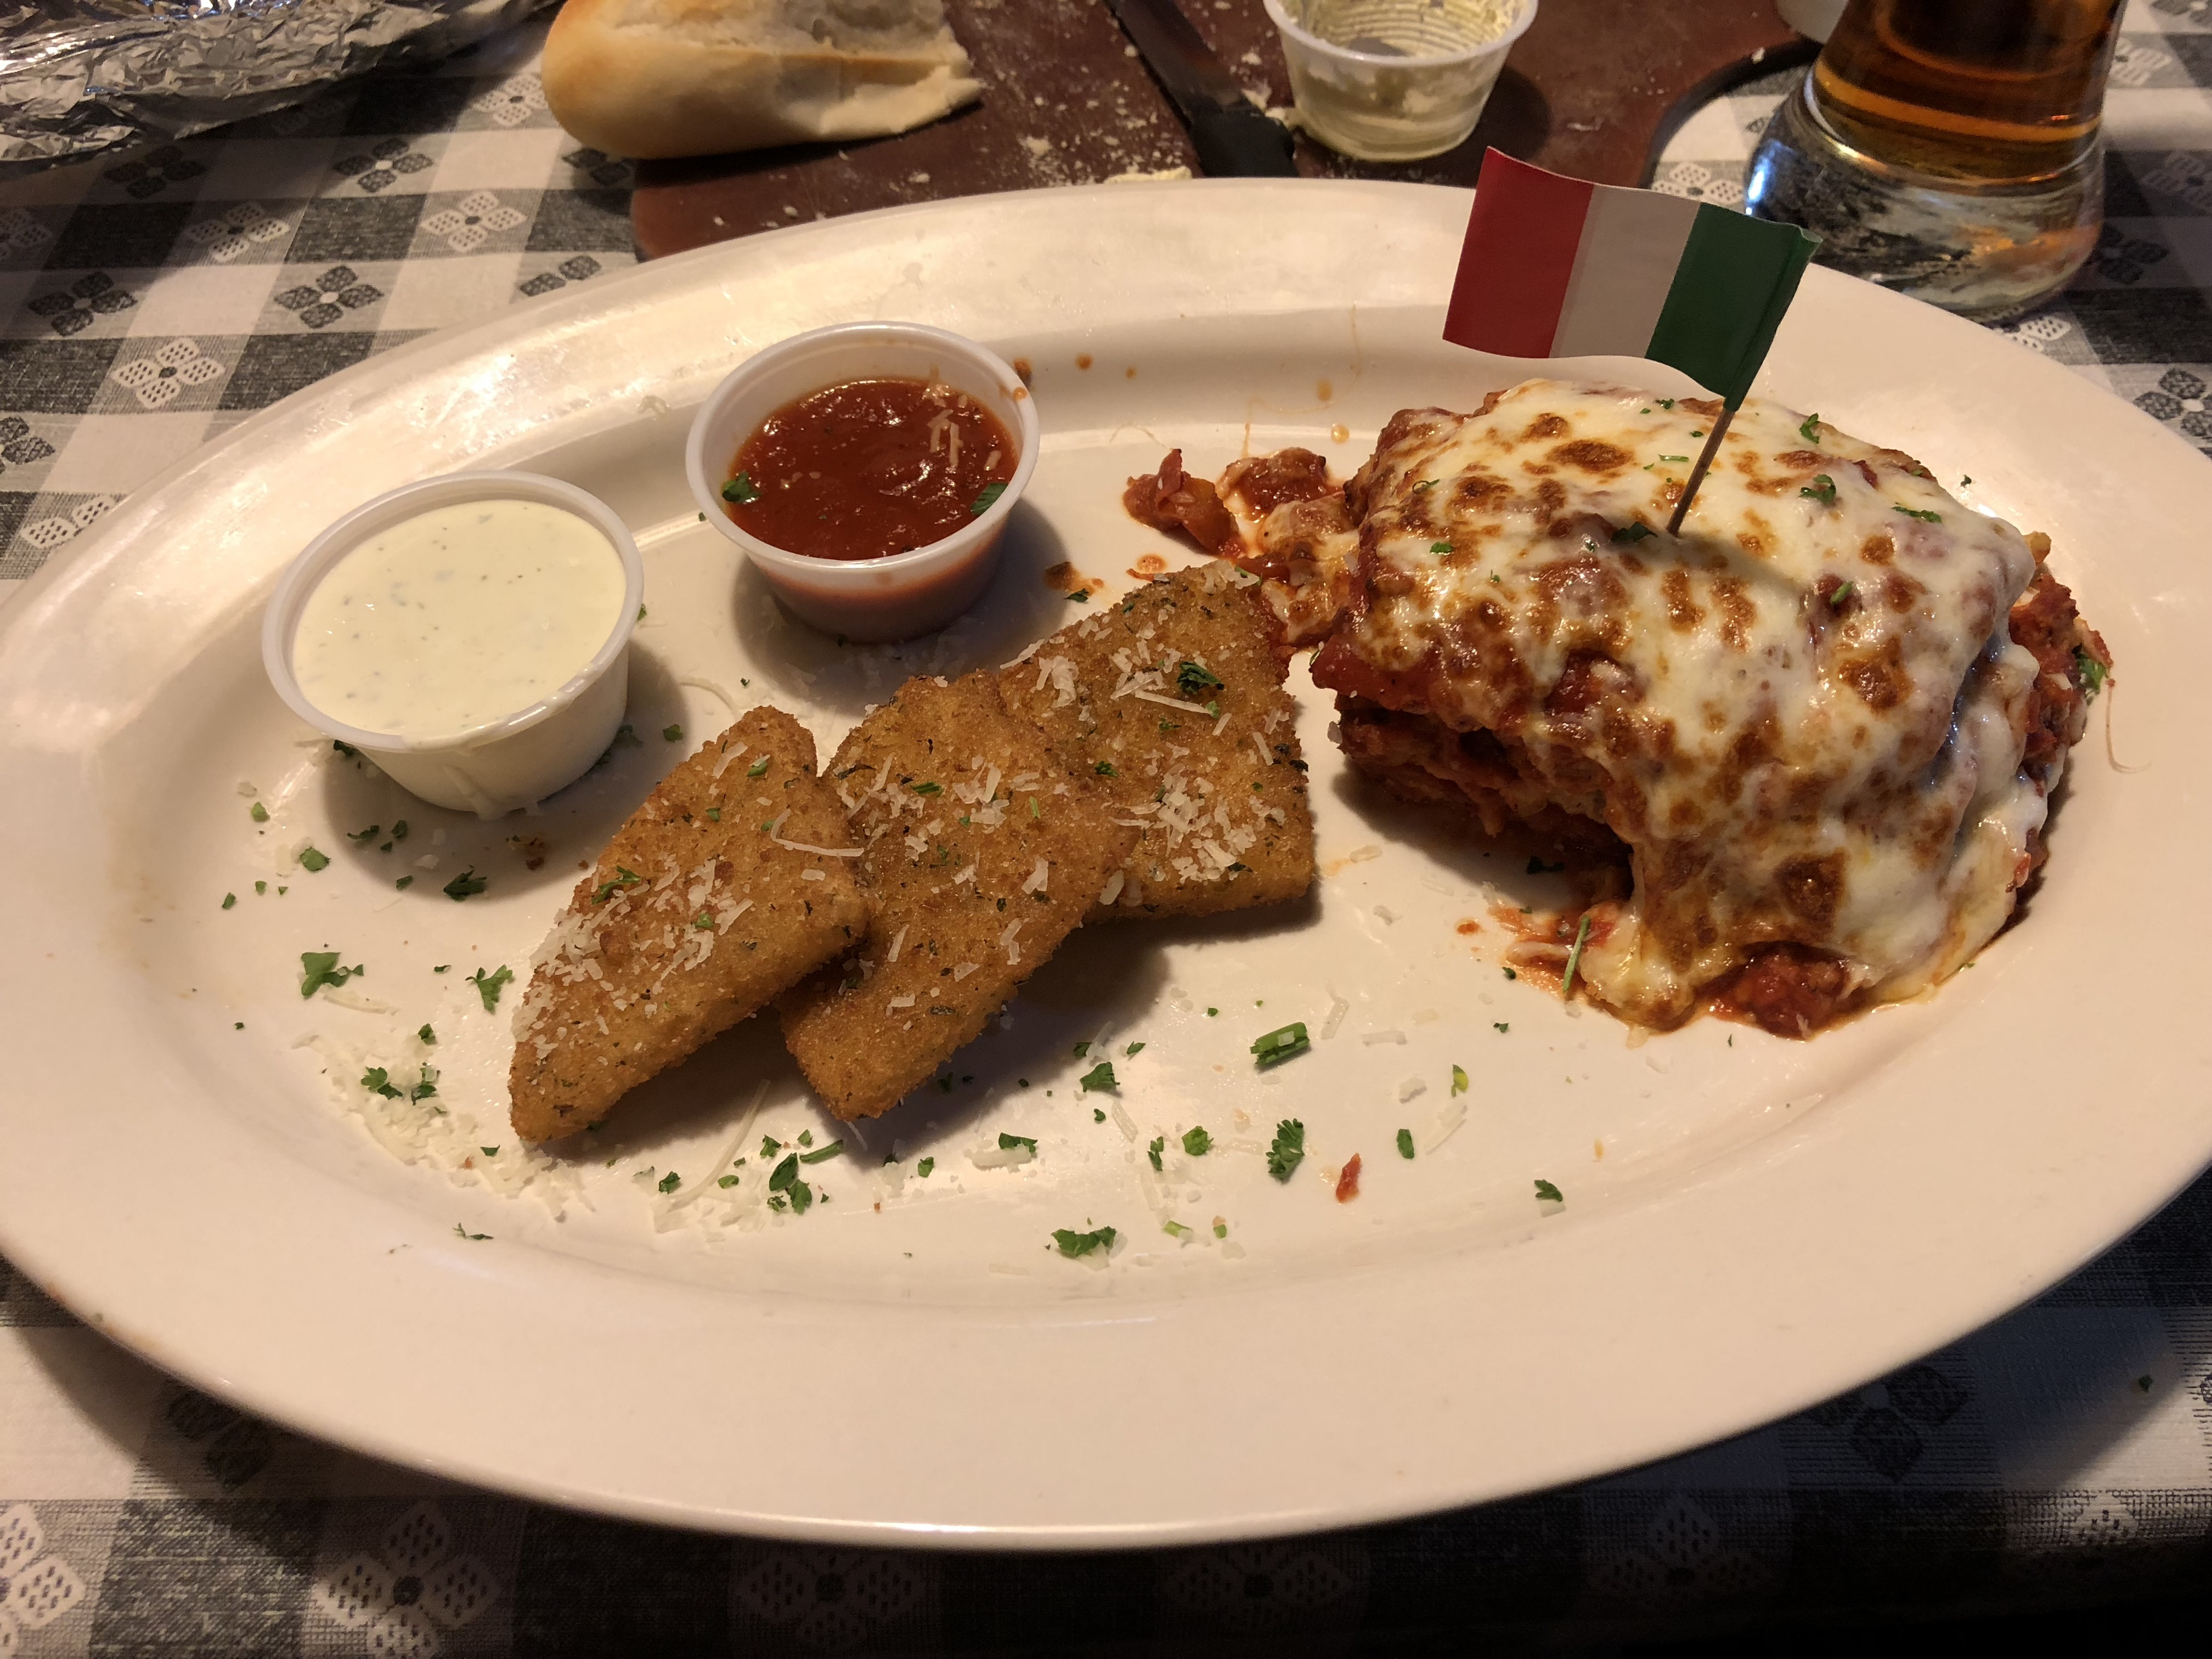 Cheese Fritters and Lasagna on 04-07-2018